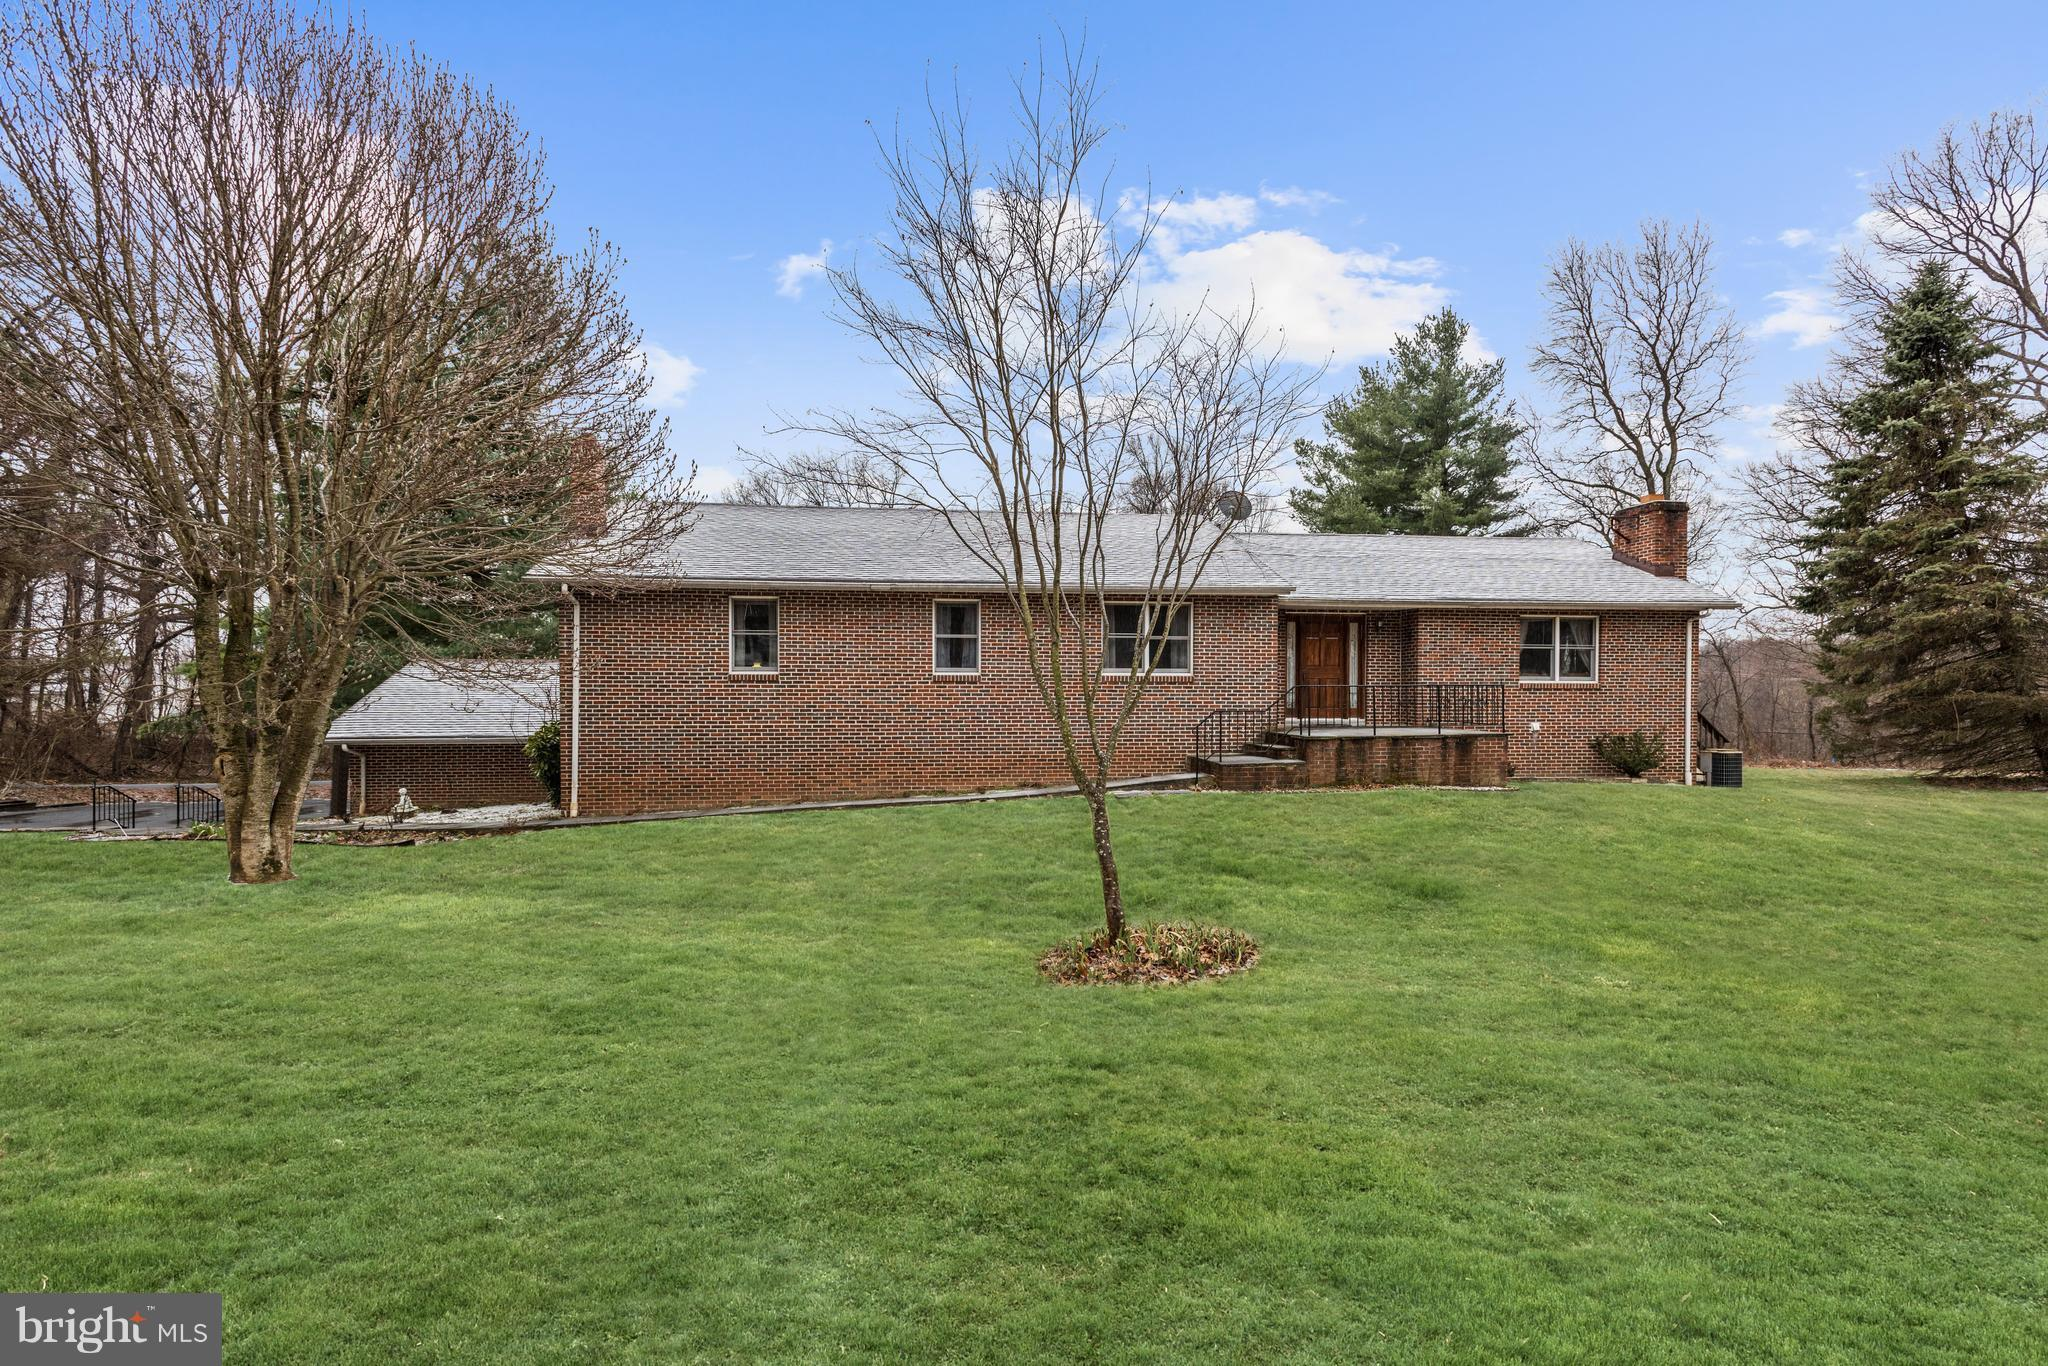 11406 OLD FREDERICK ROAD, MARRIOTTSVILLE, MD 21104